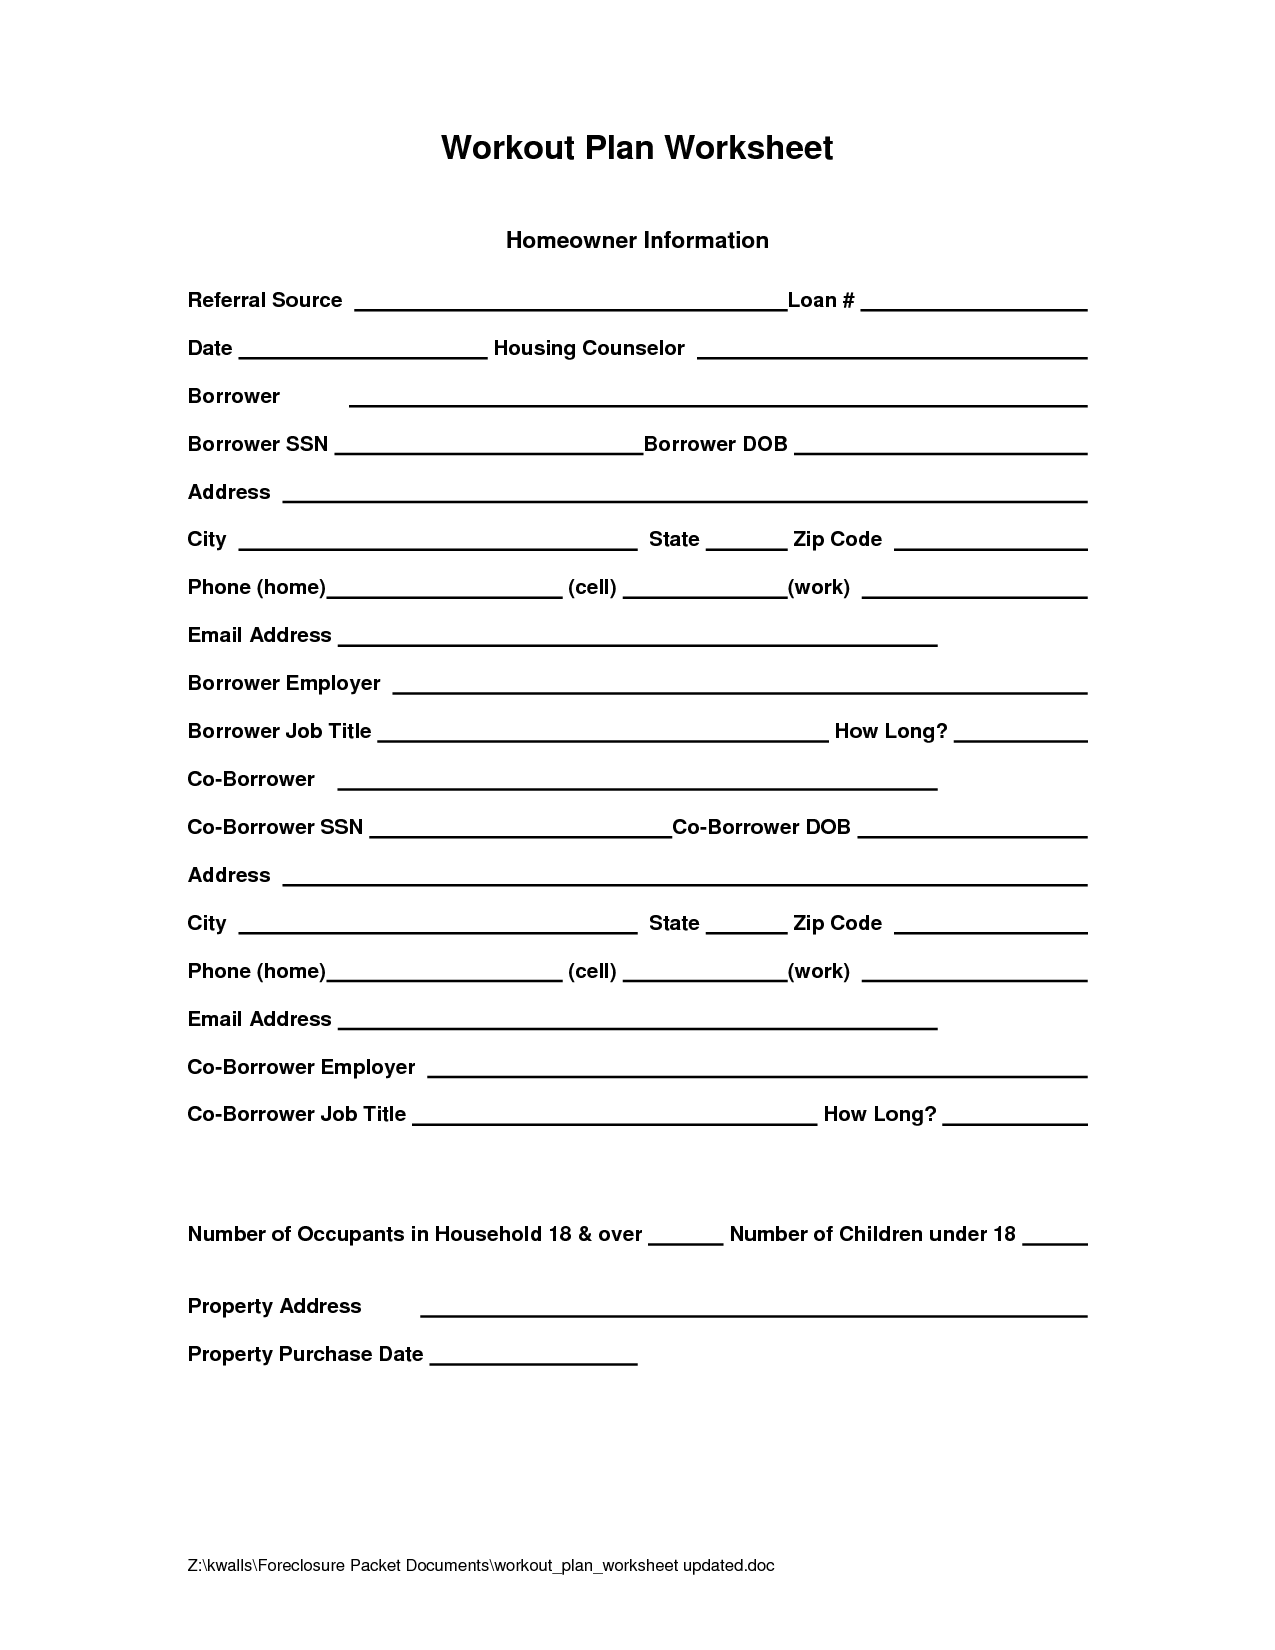 Worksheet For Grief